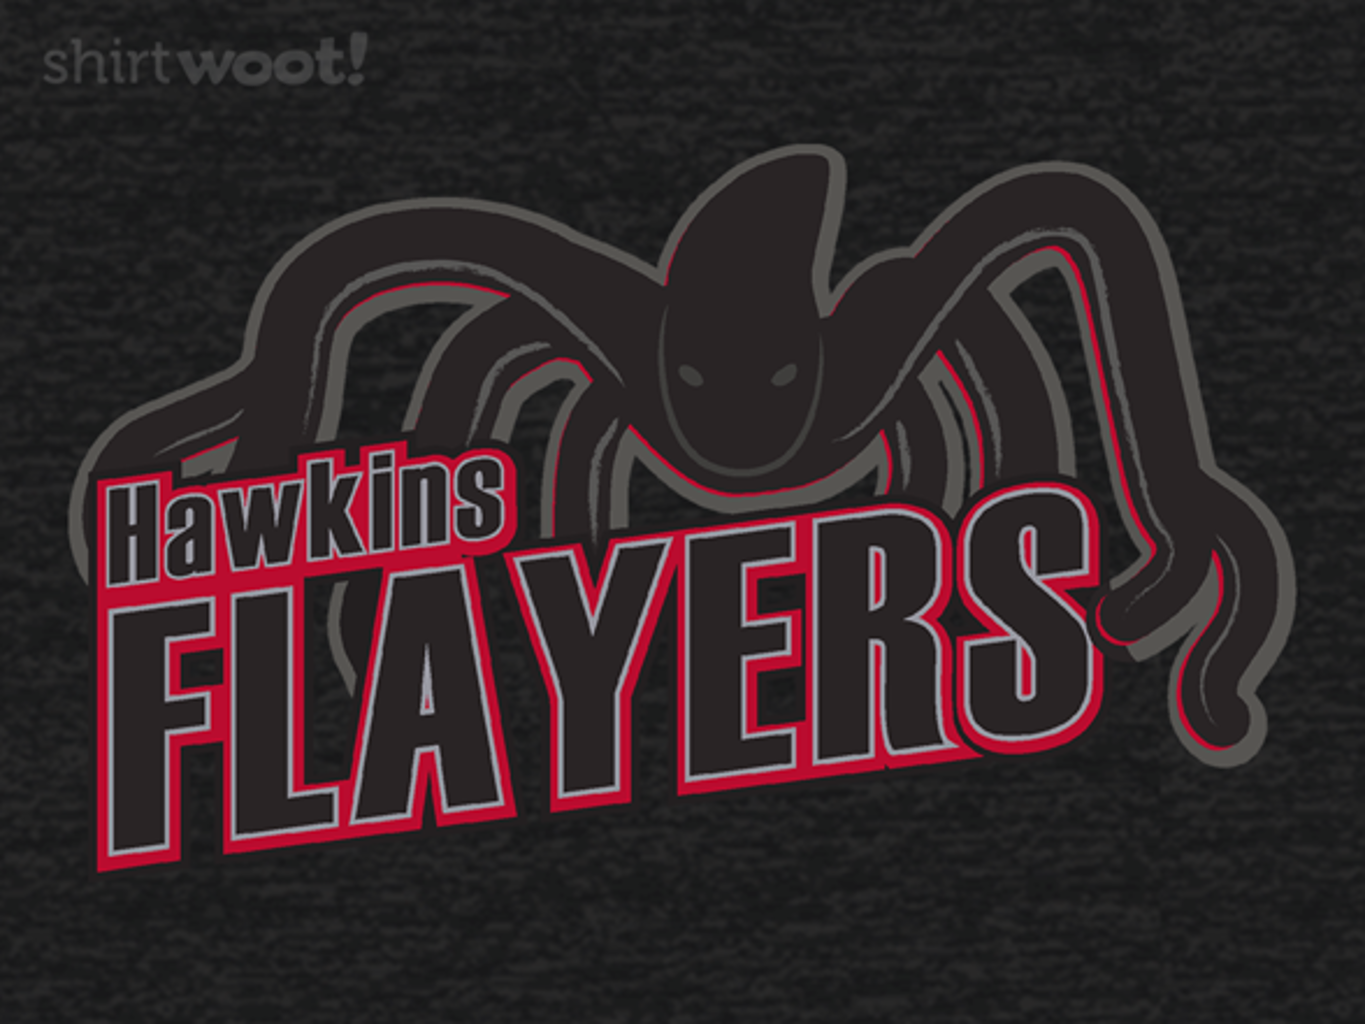 Woot!: Flayers